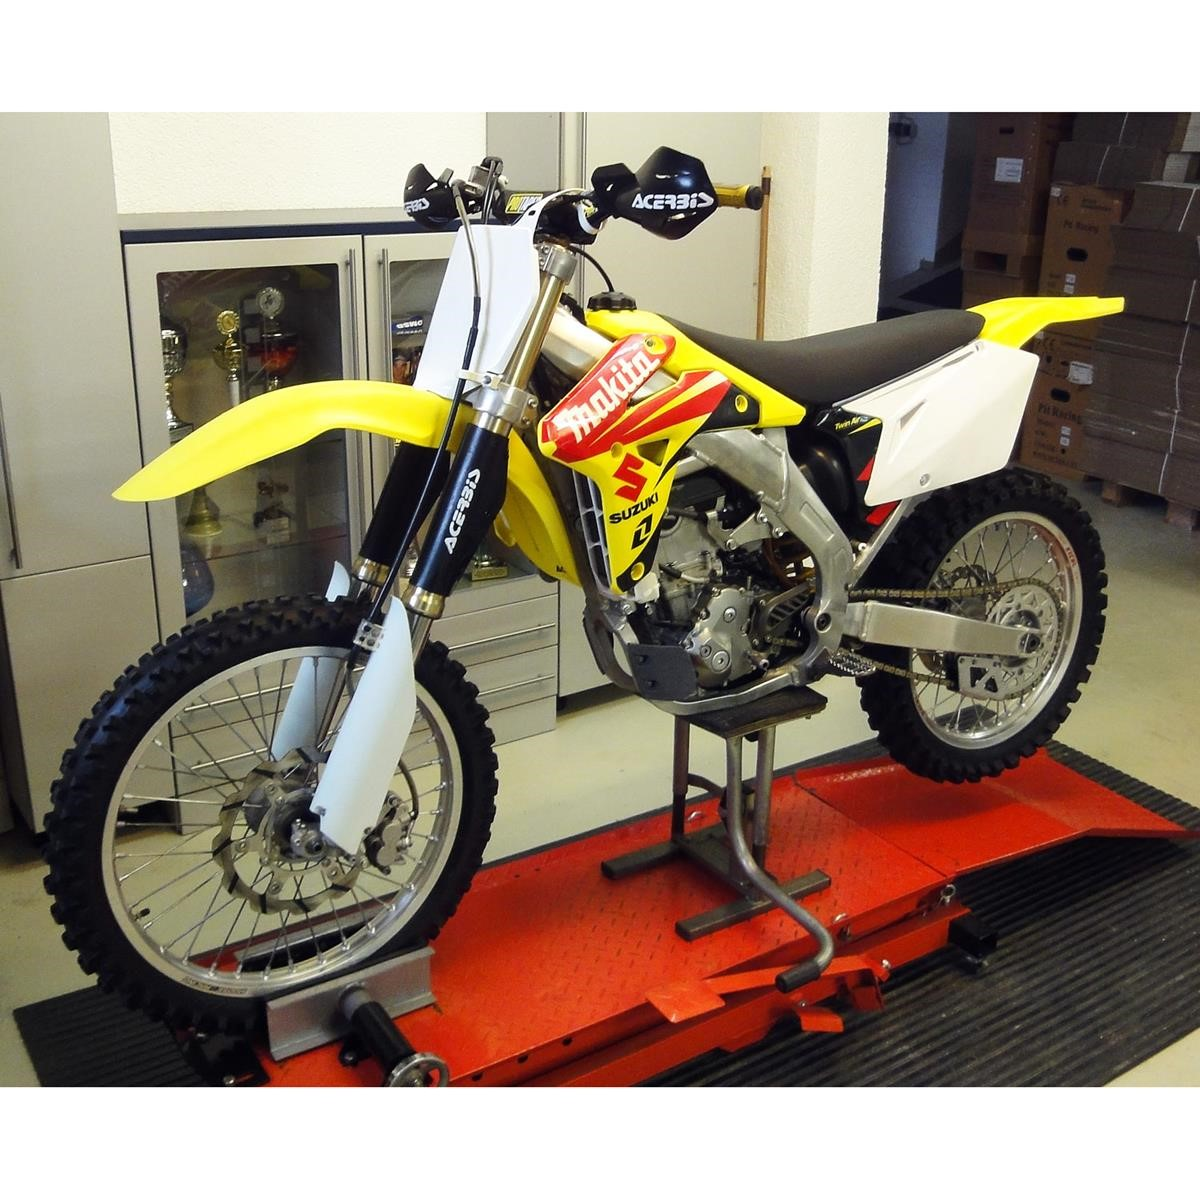 suzuki motorrad rmz 450 k7 gebraucht modell 2007 maciag offroad. Black Bedroom Furniture Sets. Home Design Ideas